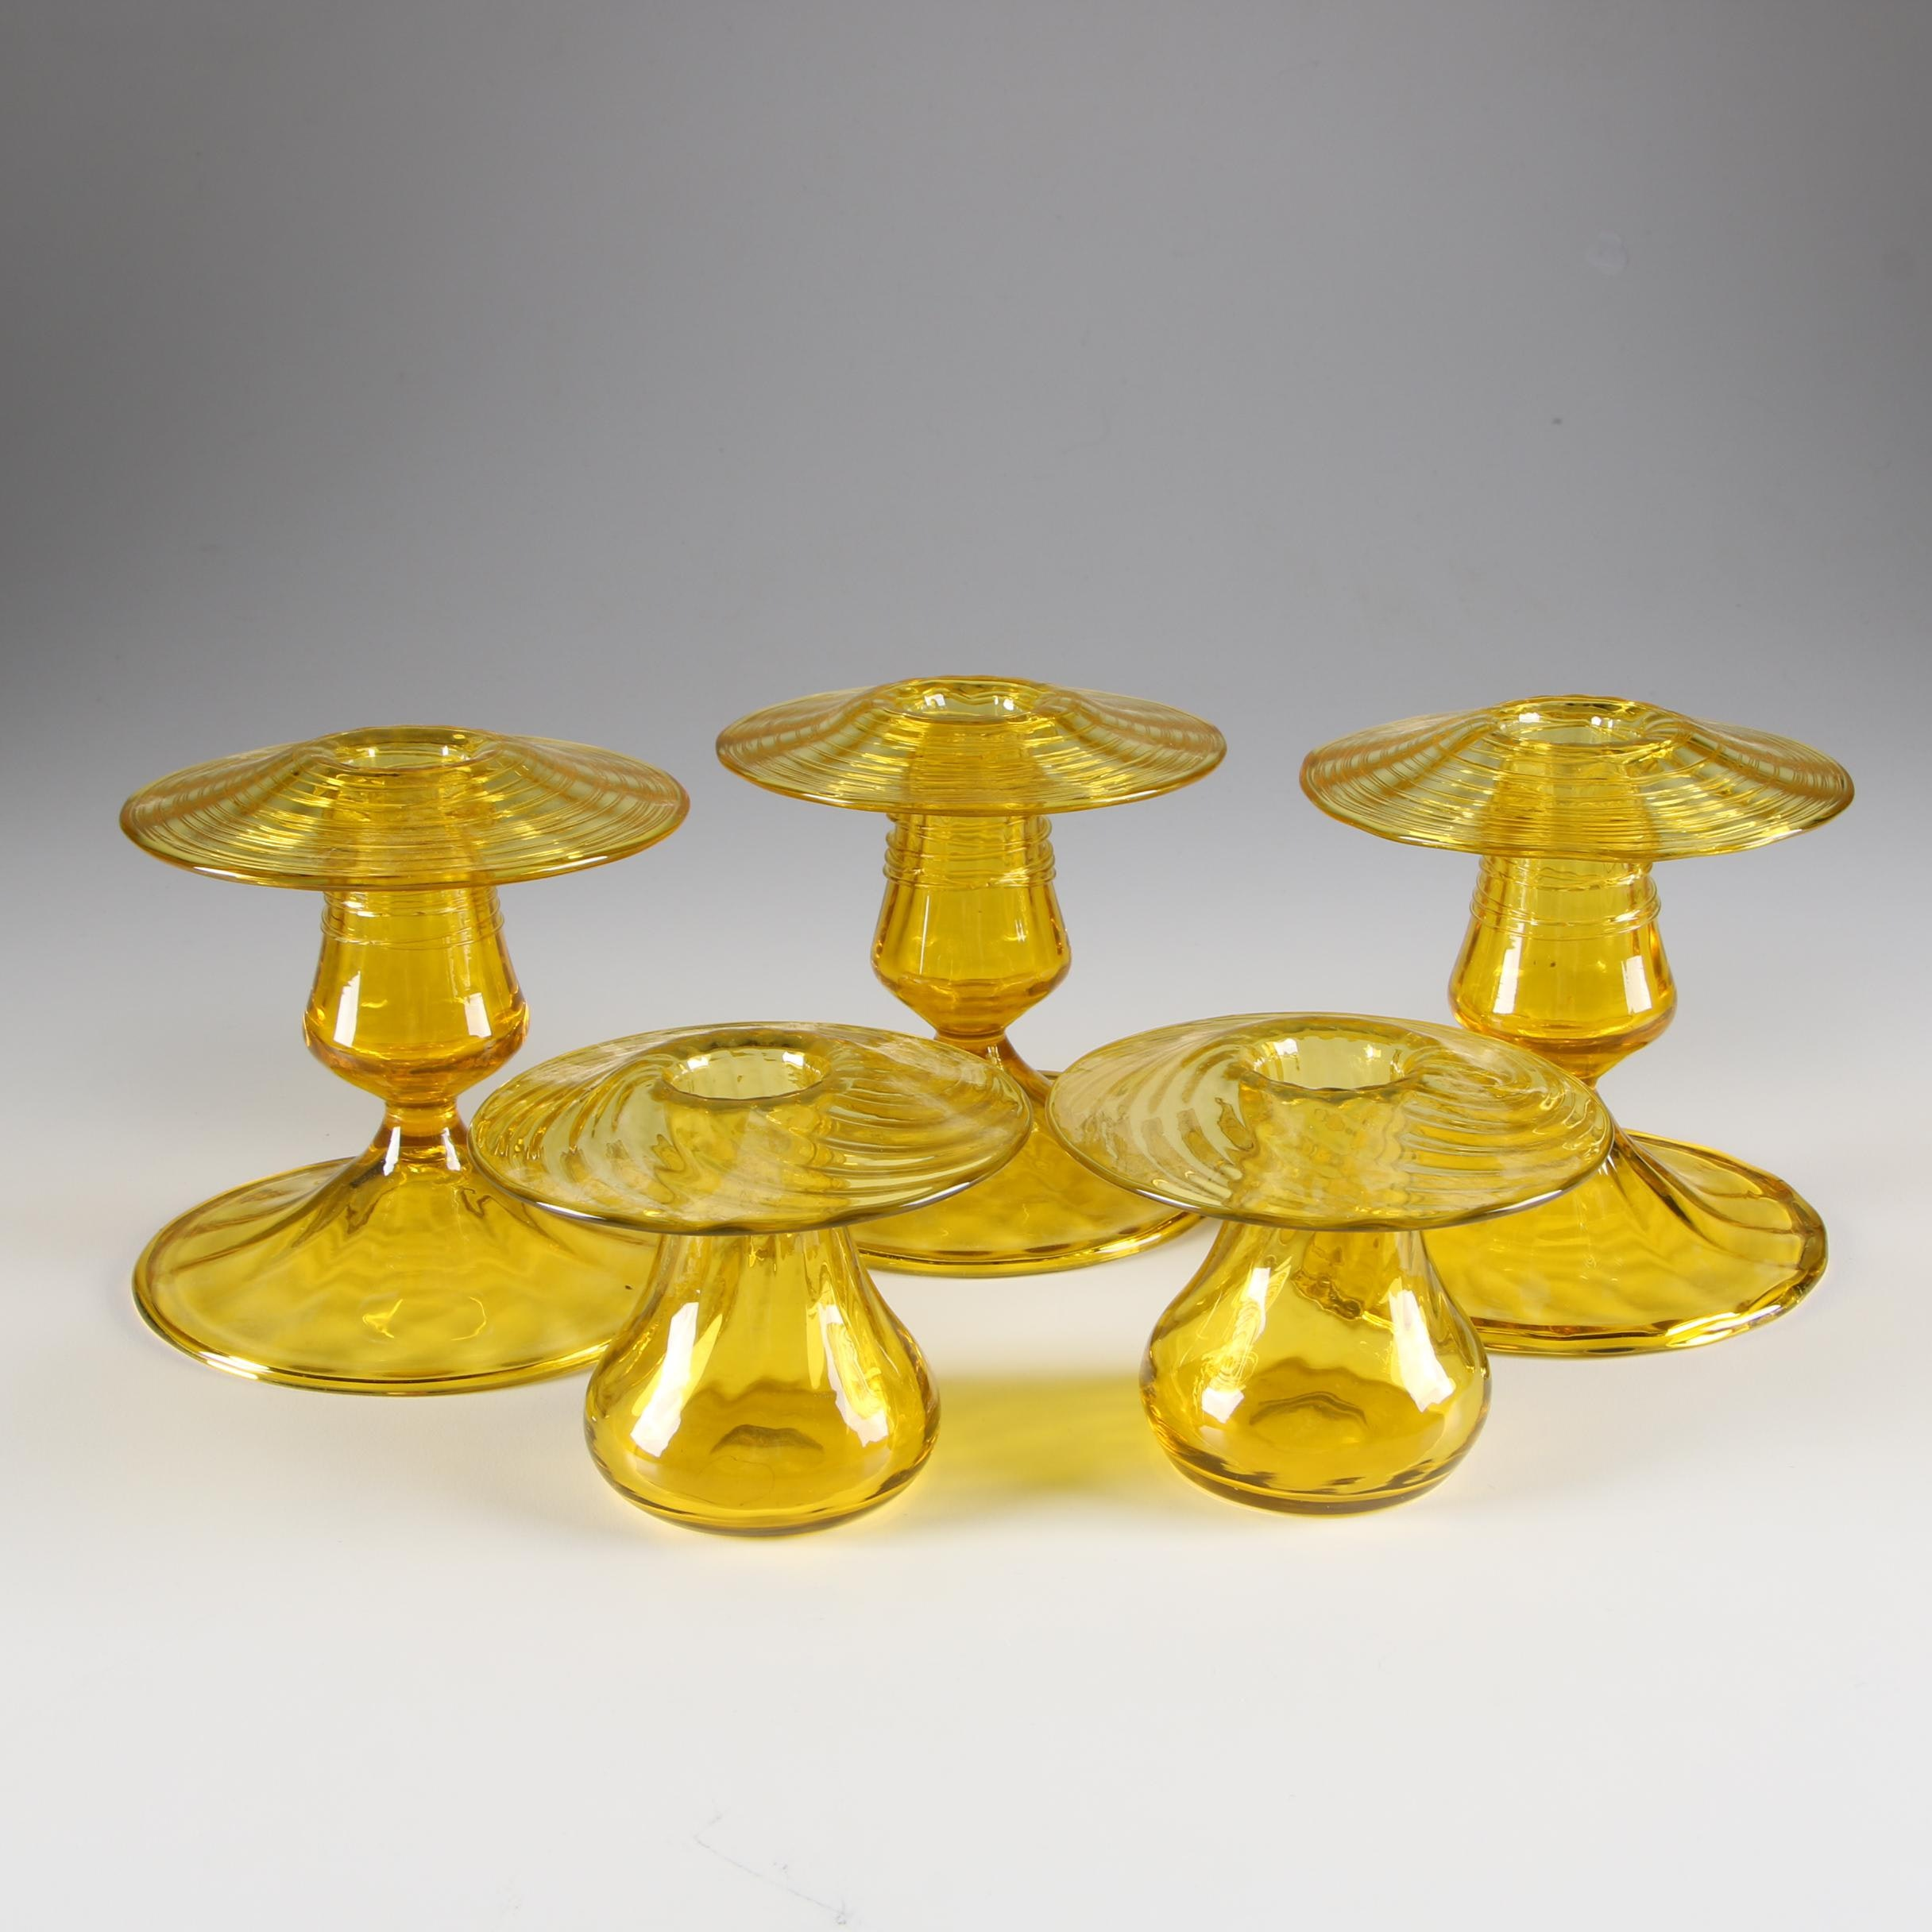 Steuben Bristol Yellow Reeded Candlesticks and Optic Ribbed Vases, 1903-1933